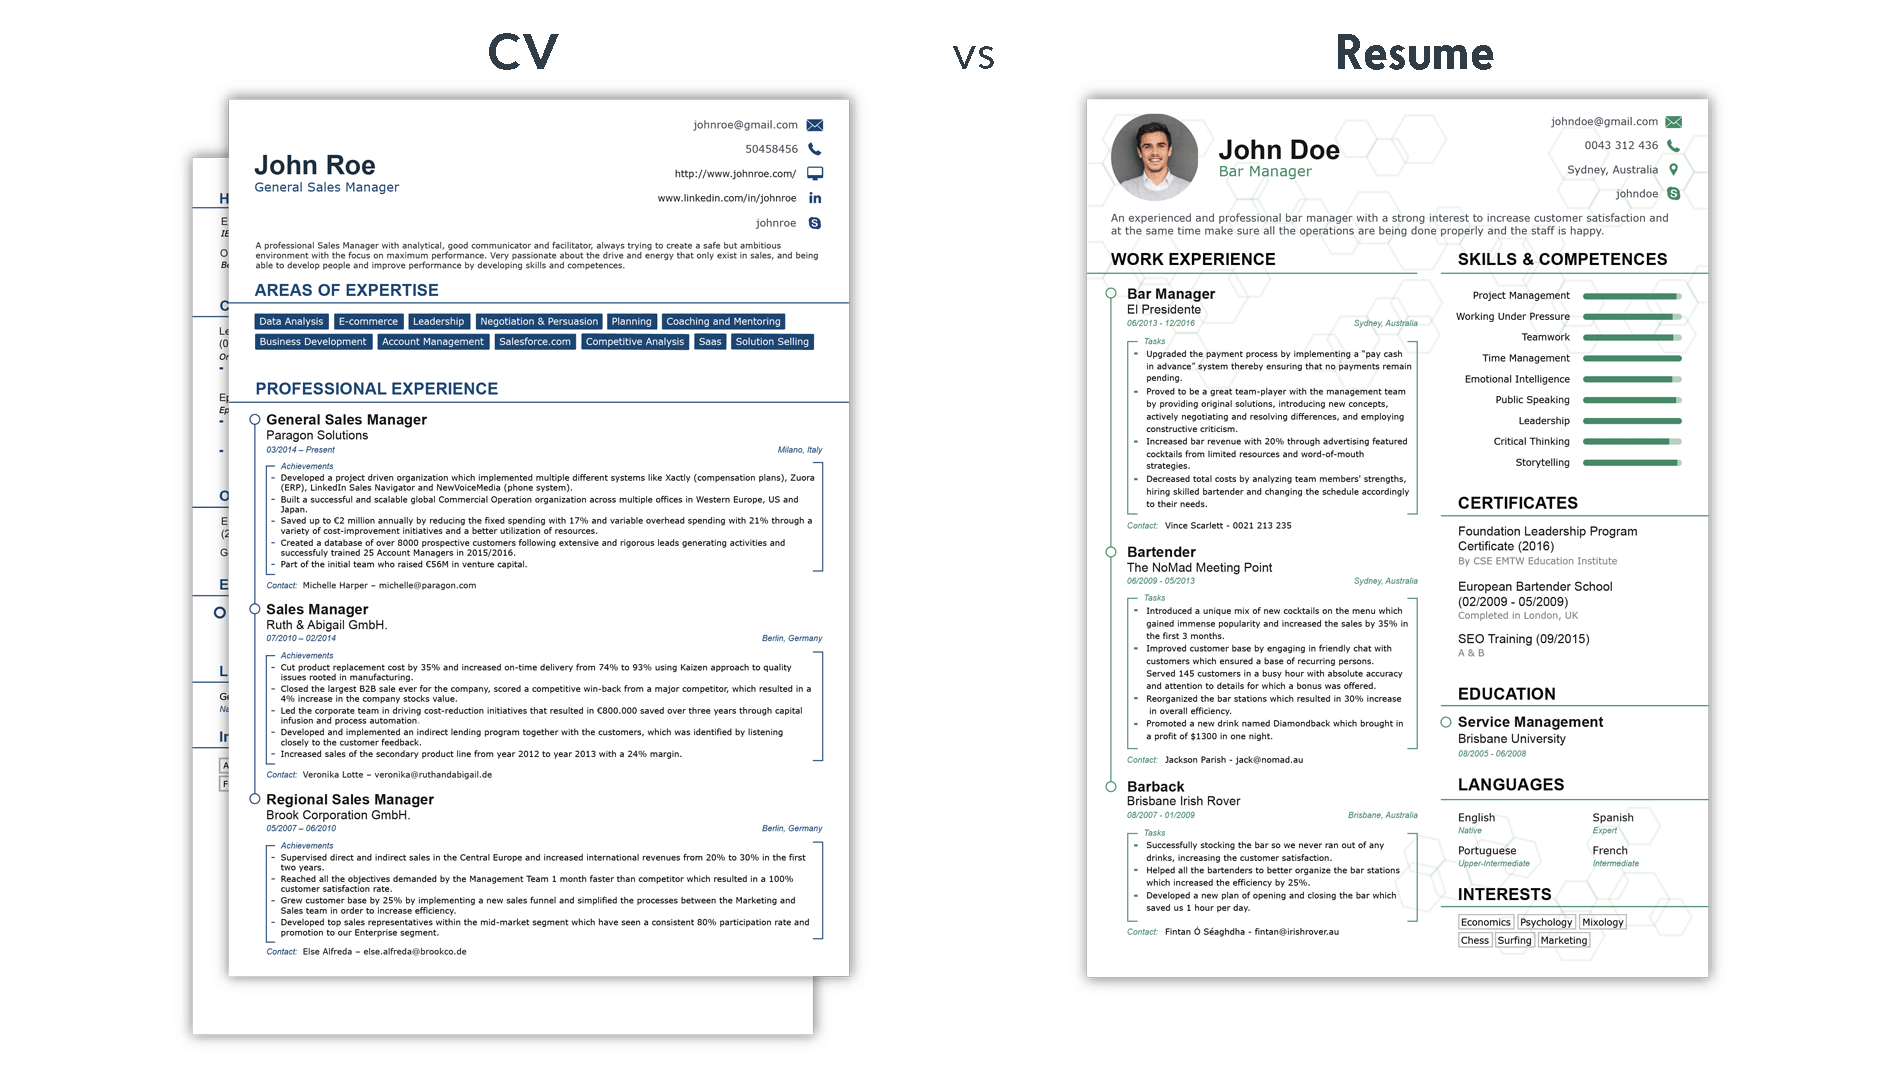 curriculum vitae vs resume - How To Build A Professional Resume